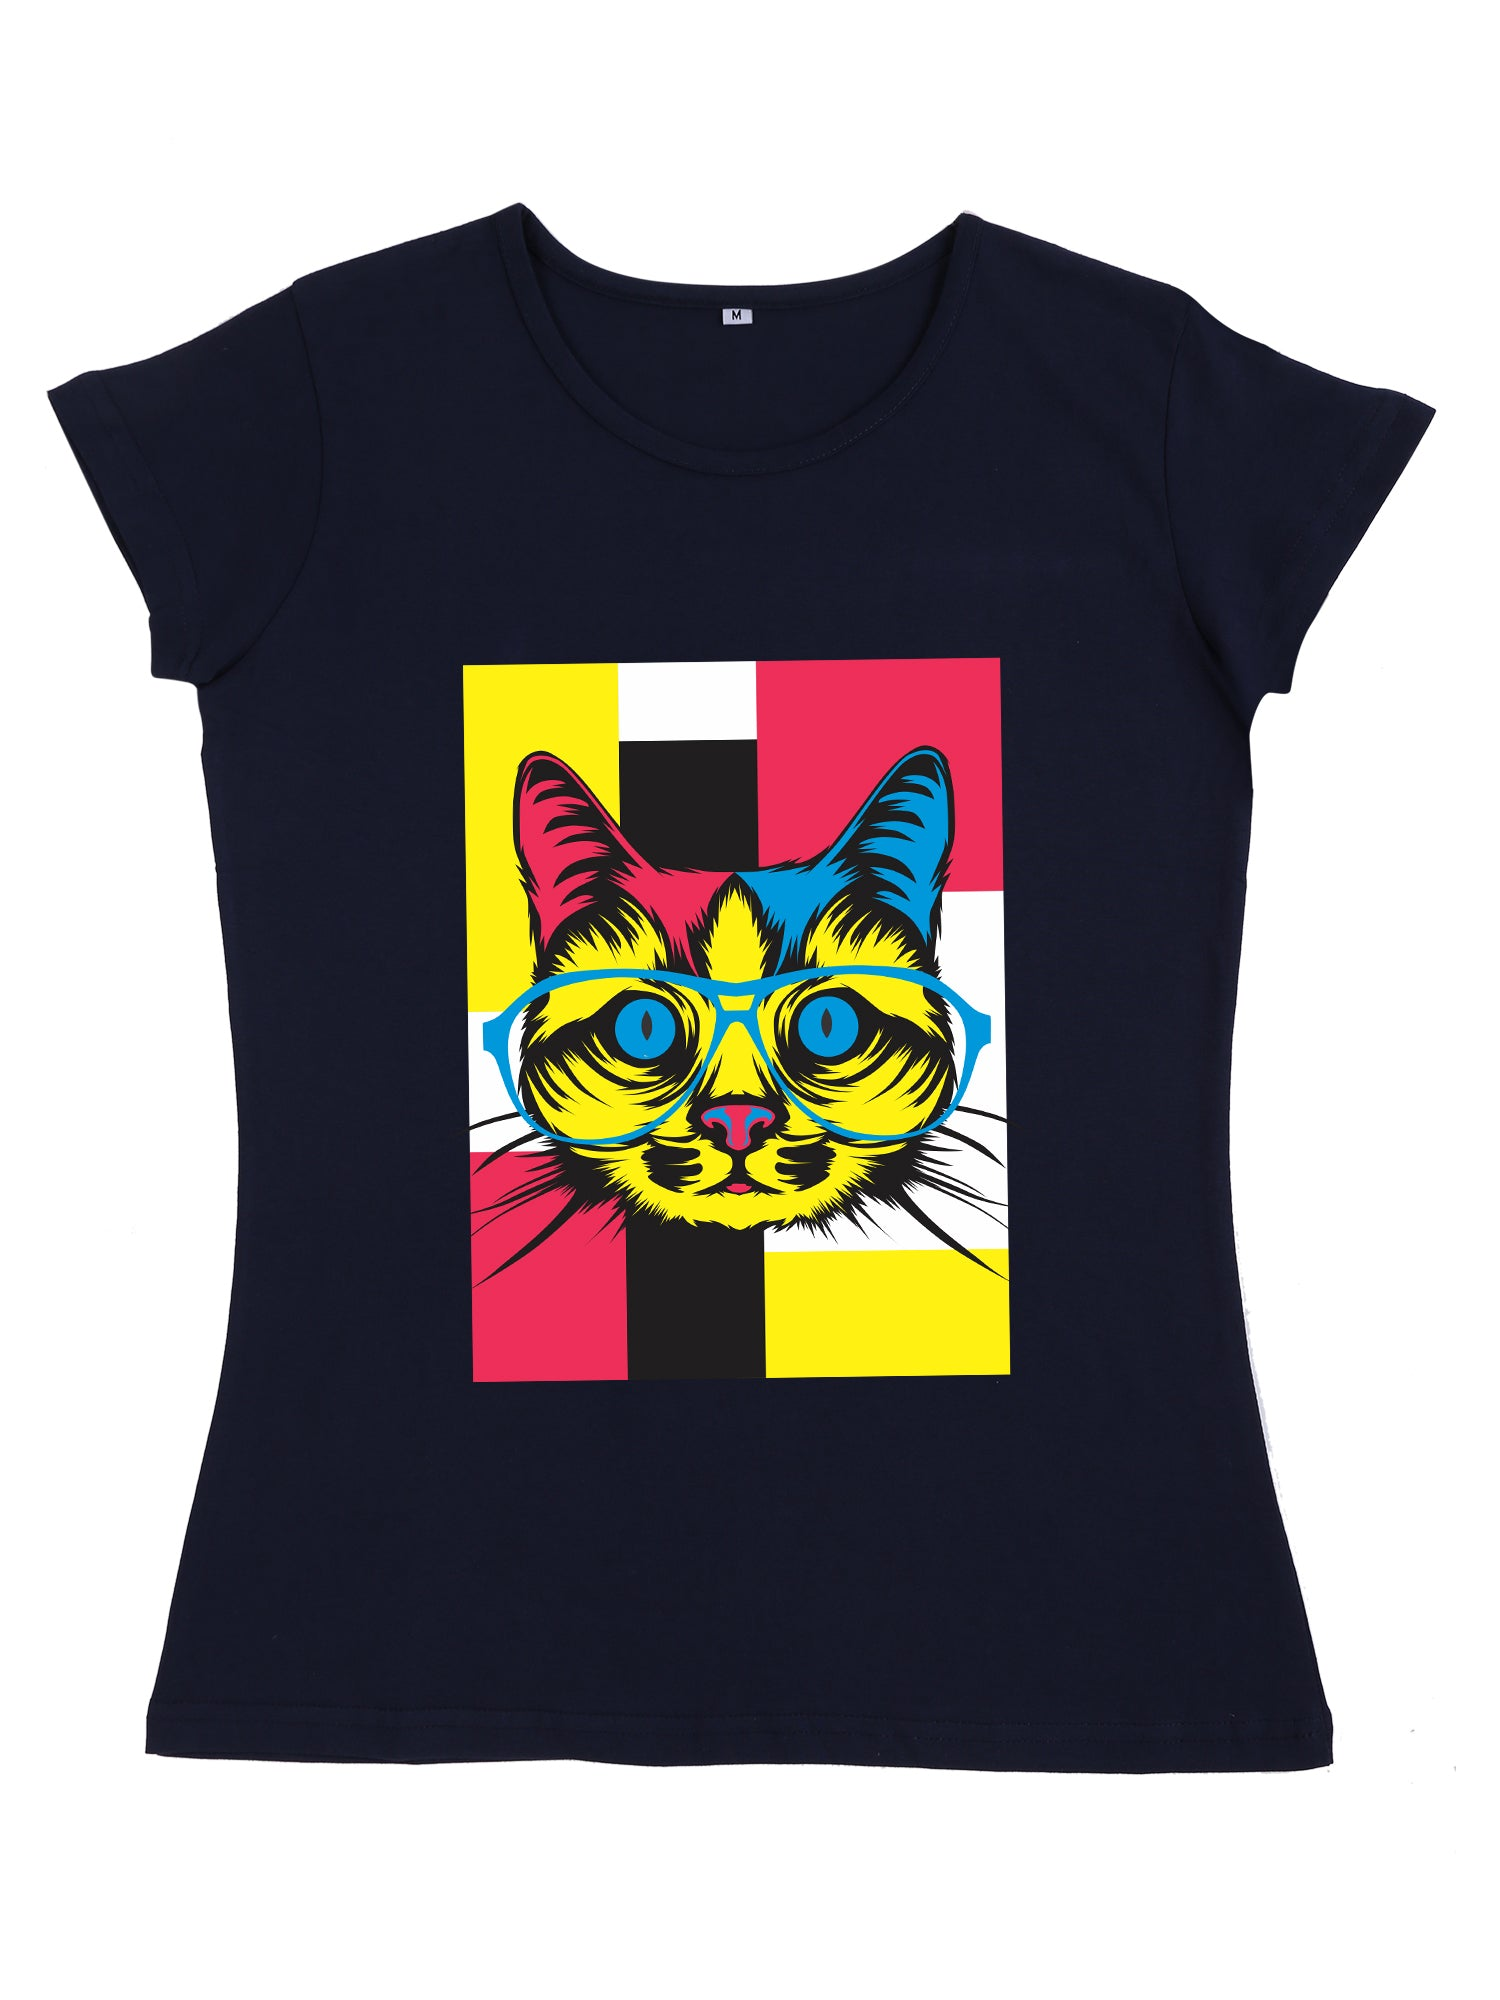 Bueno Life Women's Cotton Printed T-Shirt - Cat Specs (Navy Blue)